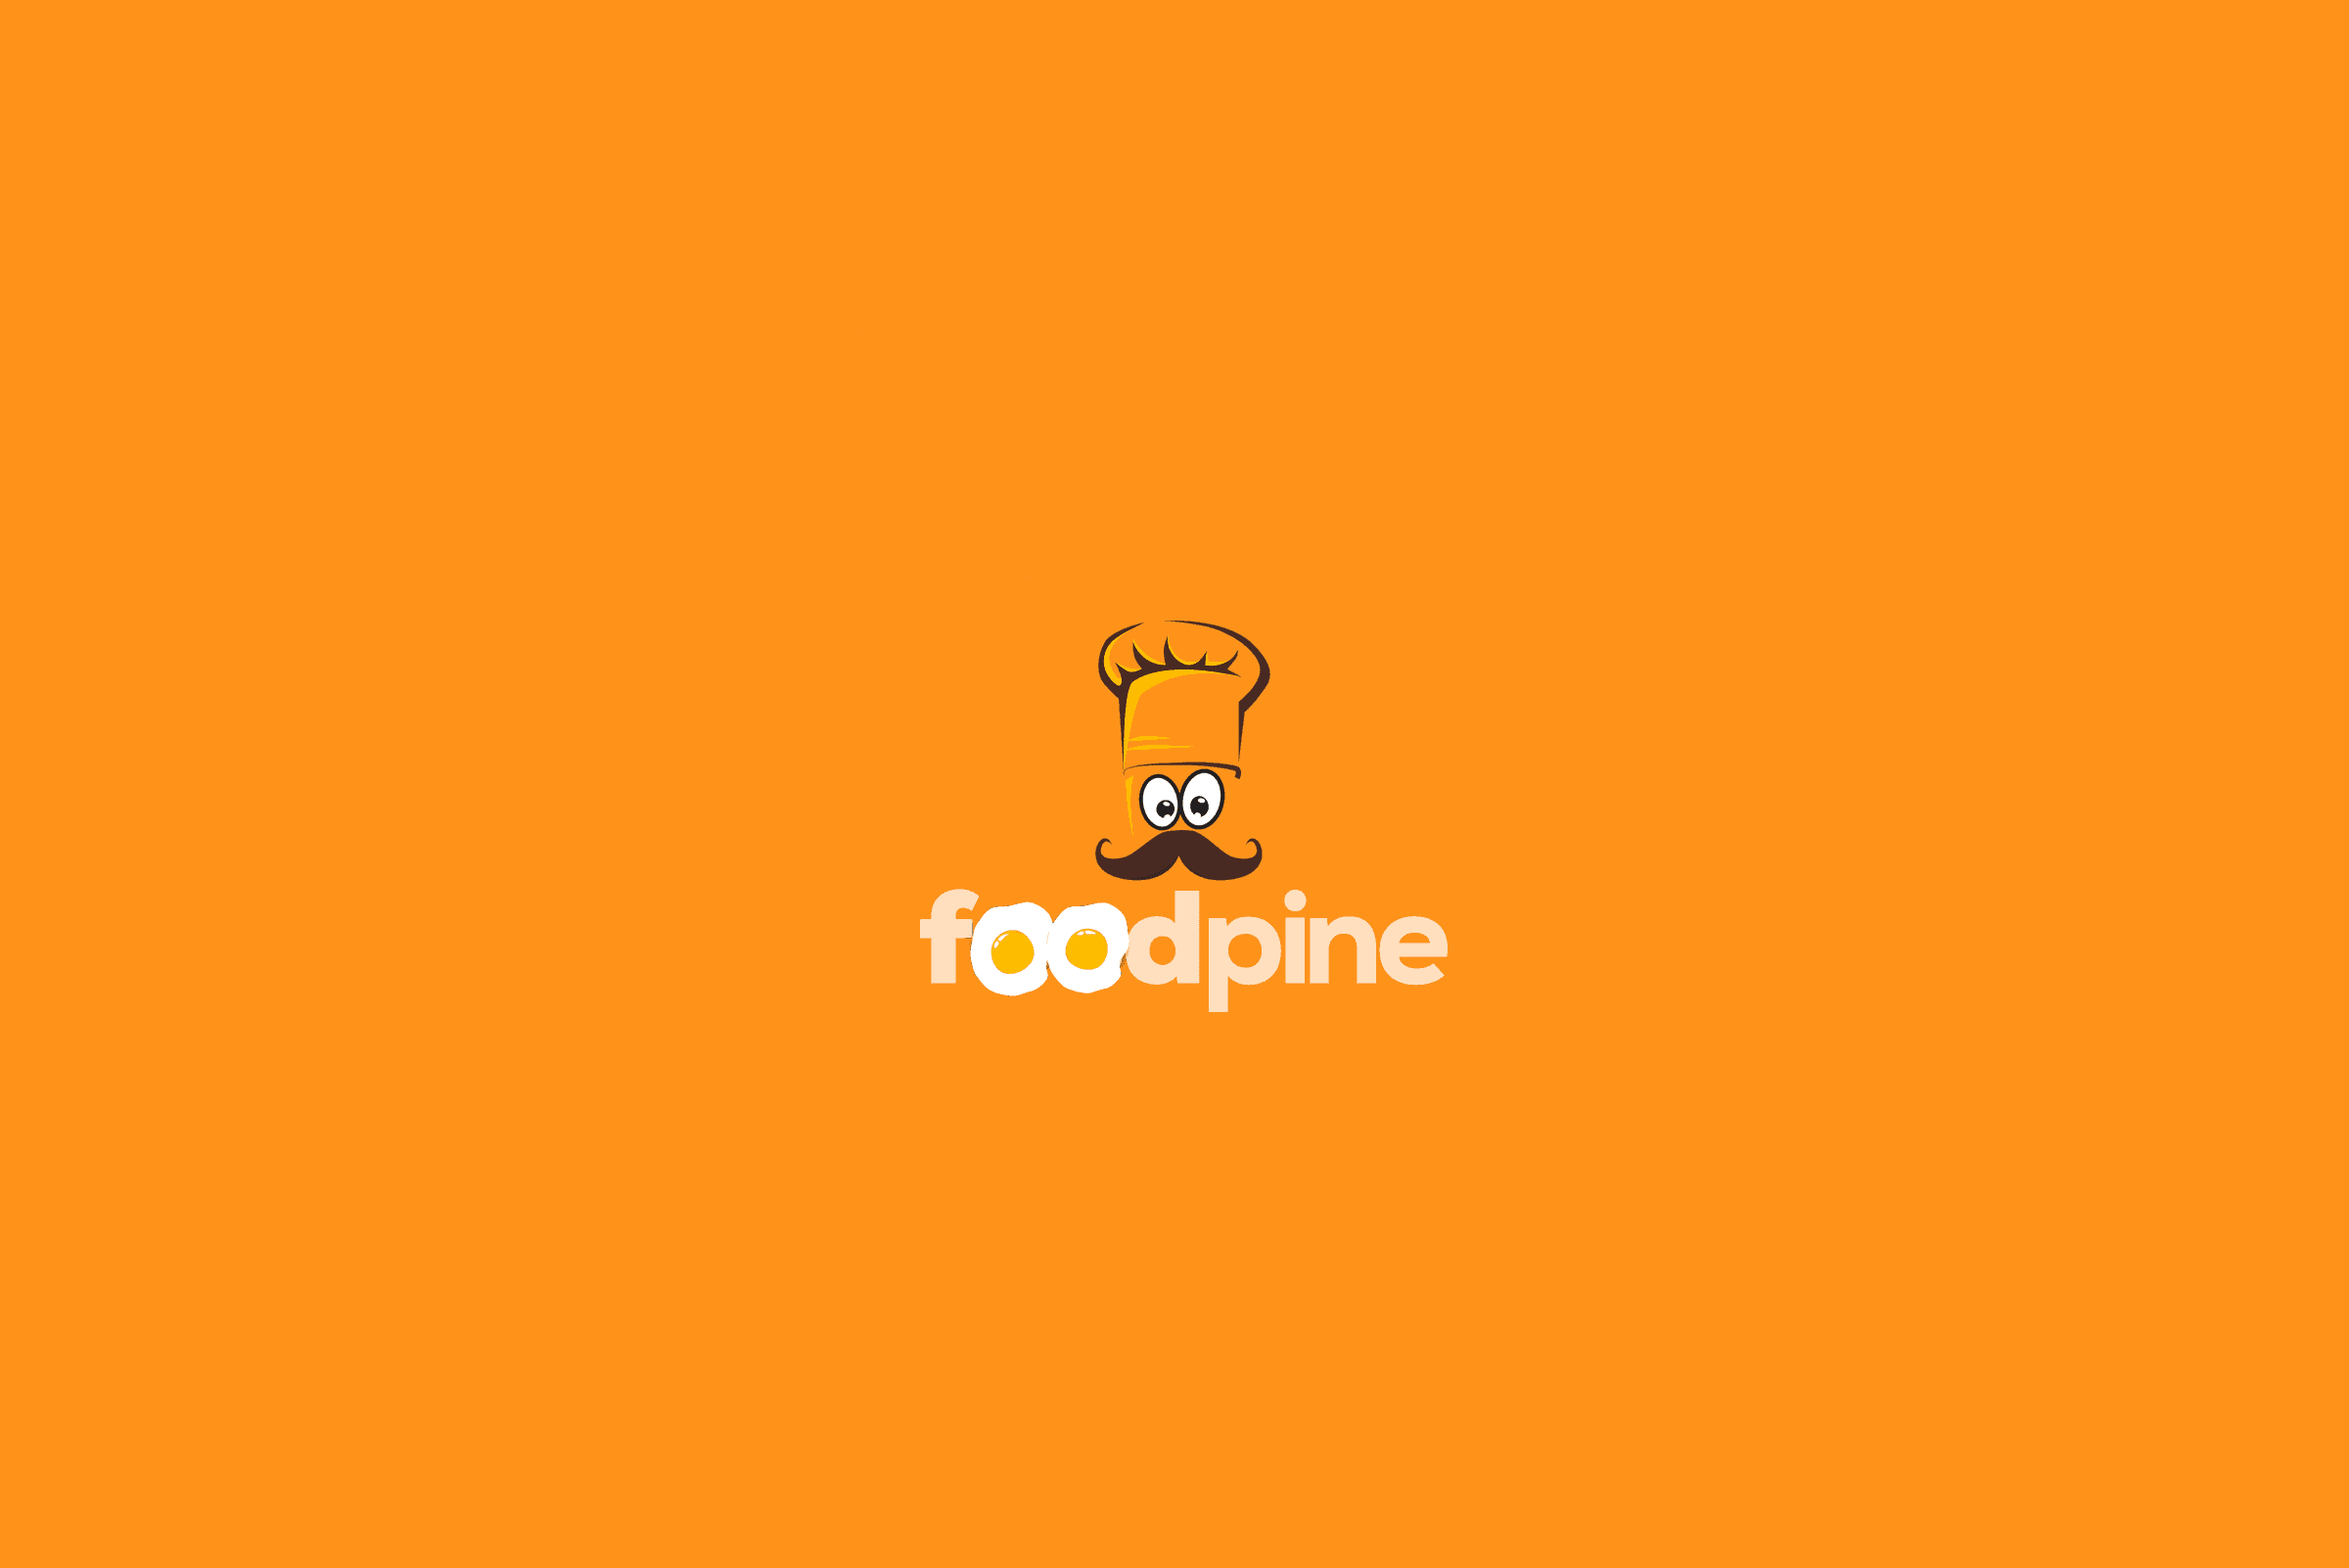 FoodPine – Food Delivery in Guntur